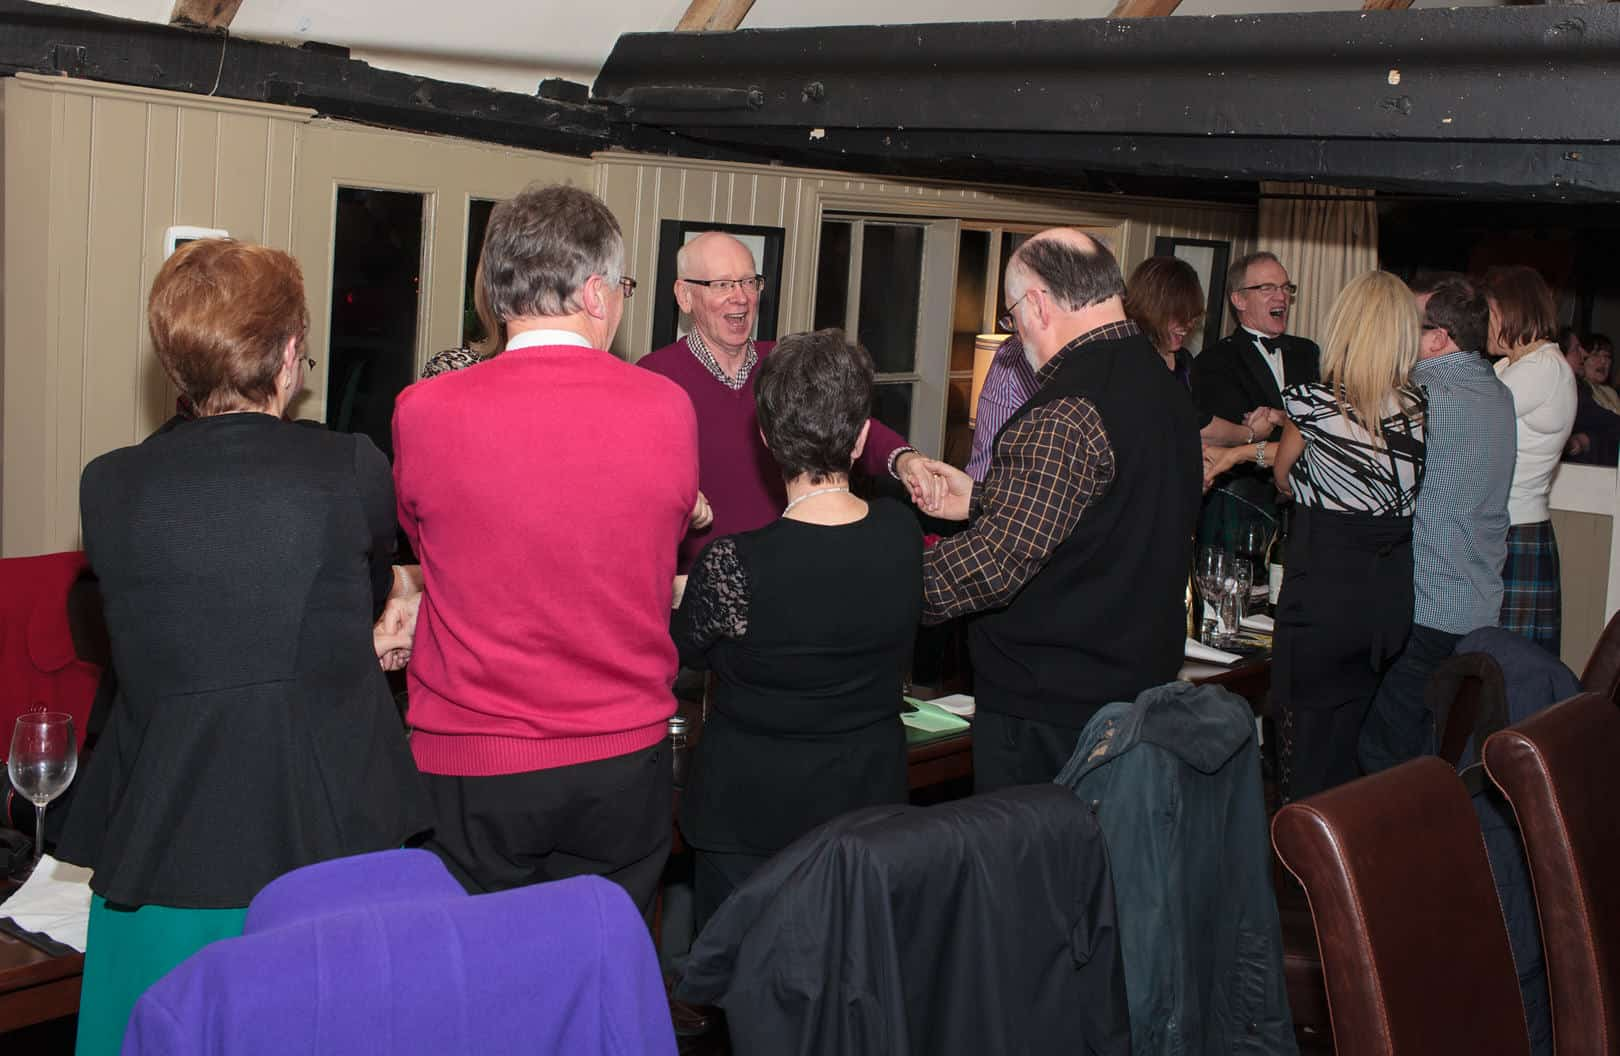 Singing at Burns Night